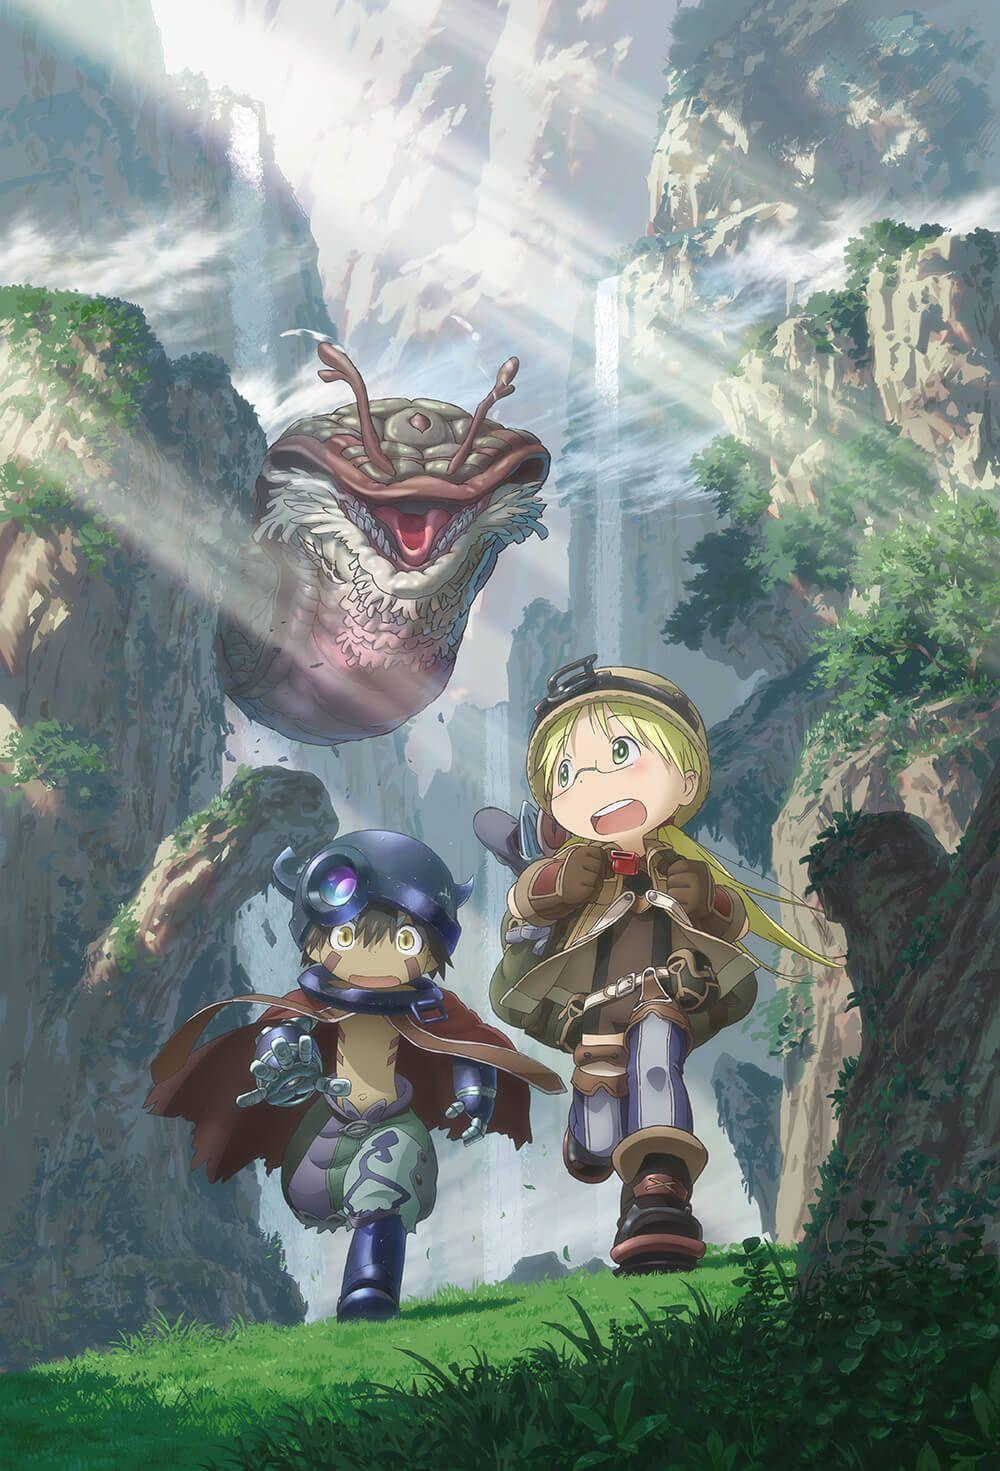 Promotional Video, Key Visuals, and Main Cast of 'Made in Abyss